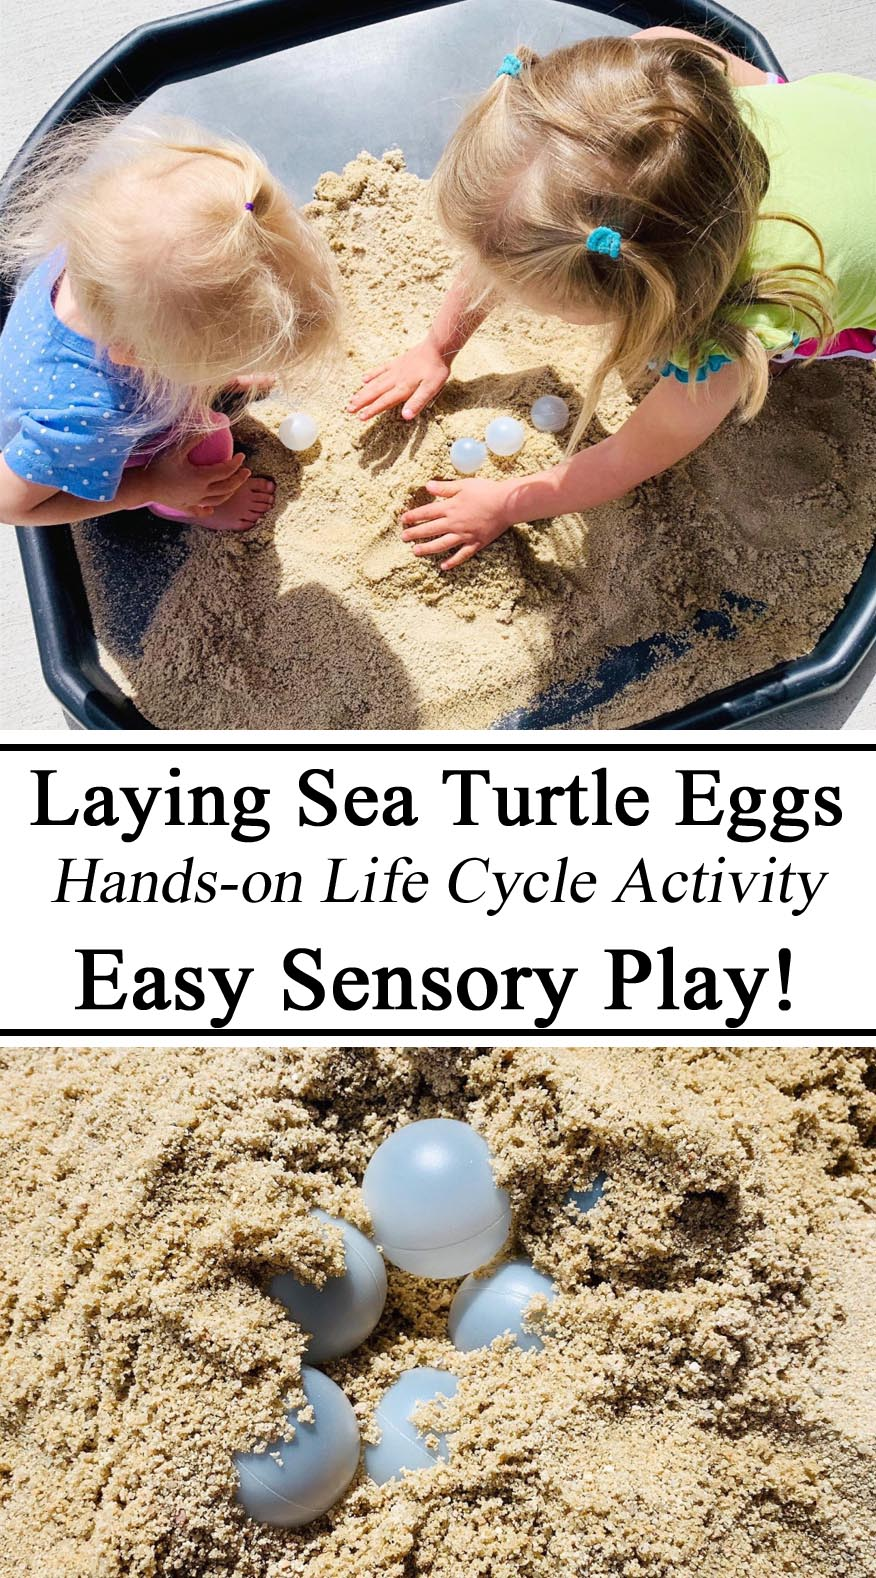 Leatherback Leather back Sea Turtle Life Cycle Eggs Sensory Play Activity Hands on Learning Montessori Inspired Waldorf Homeschool Homeschooling Tuff Tray Spot Bin Sand Ping Pong Balls, Visual Activity, Ideas Preschool Kindergarten Toddler Ideas Summer Educational Learn Jamaica Caribbean Early Years Childhood Educational